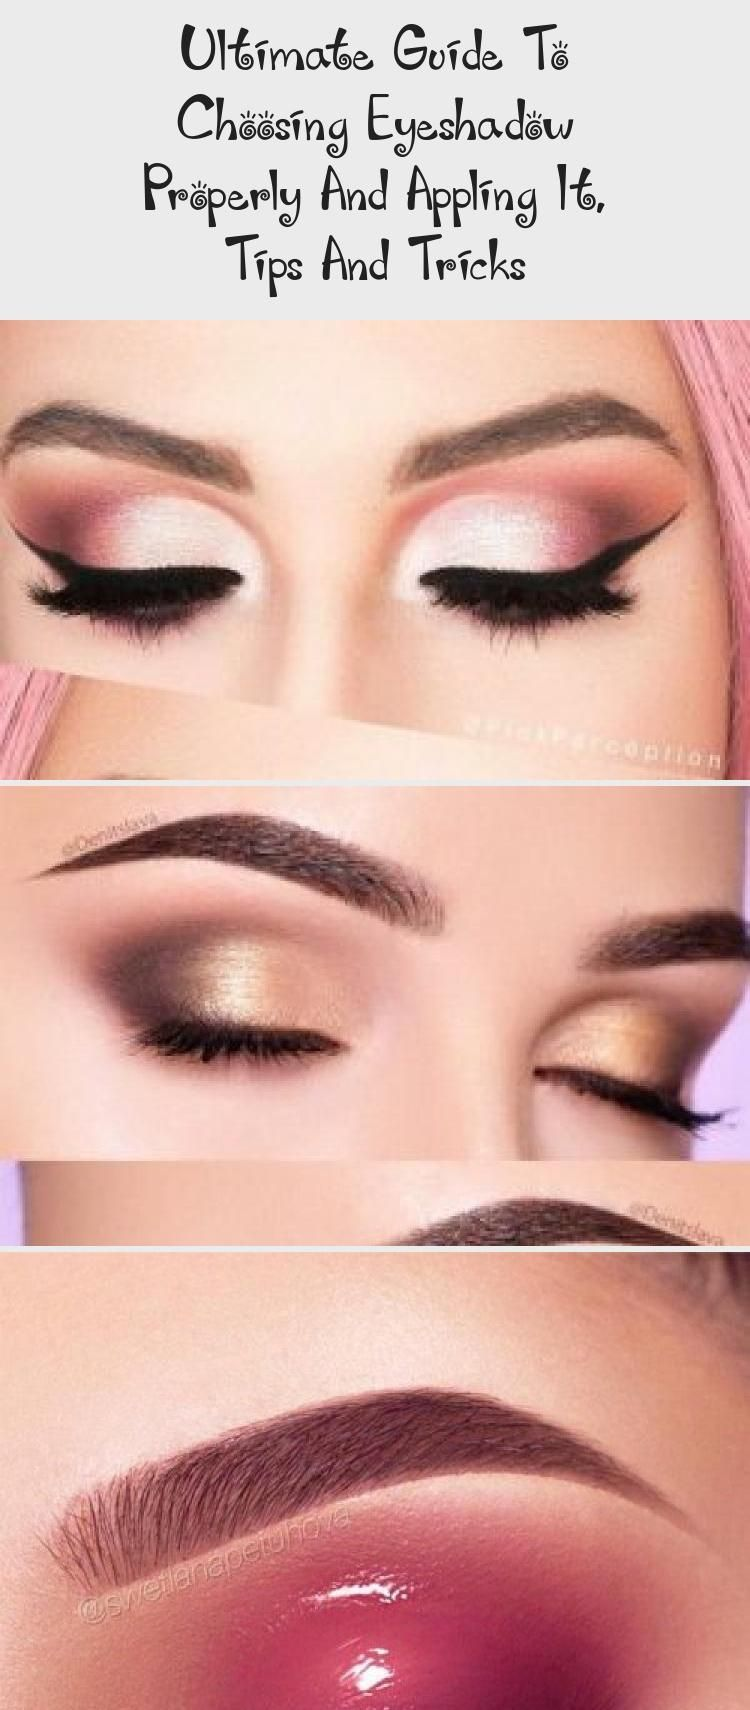 Ultimate Guide To Choosing Eyeshadow Properly And Appling